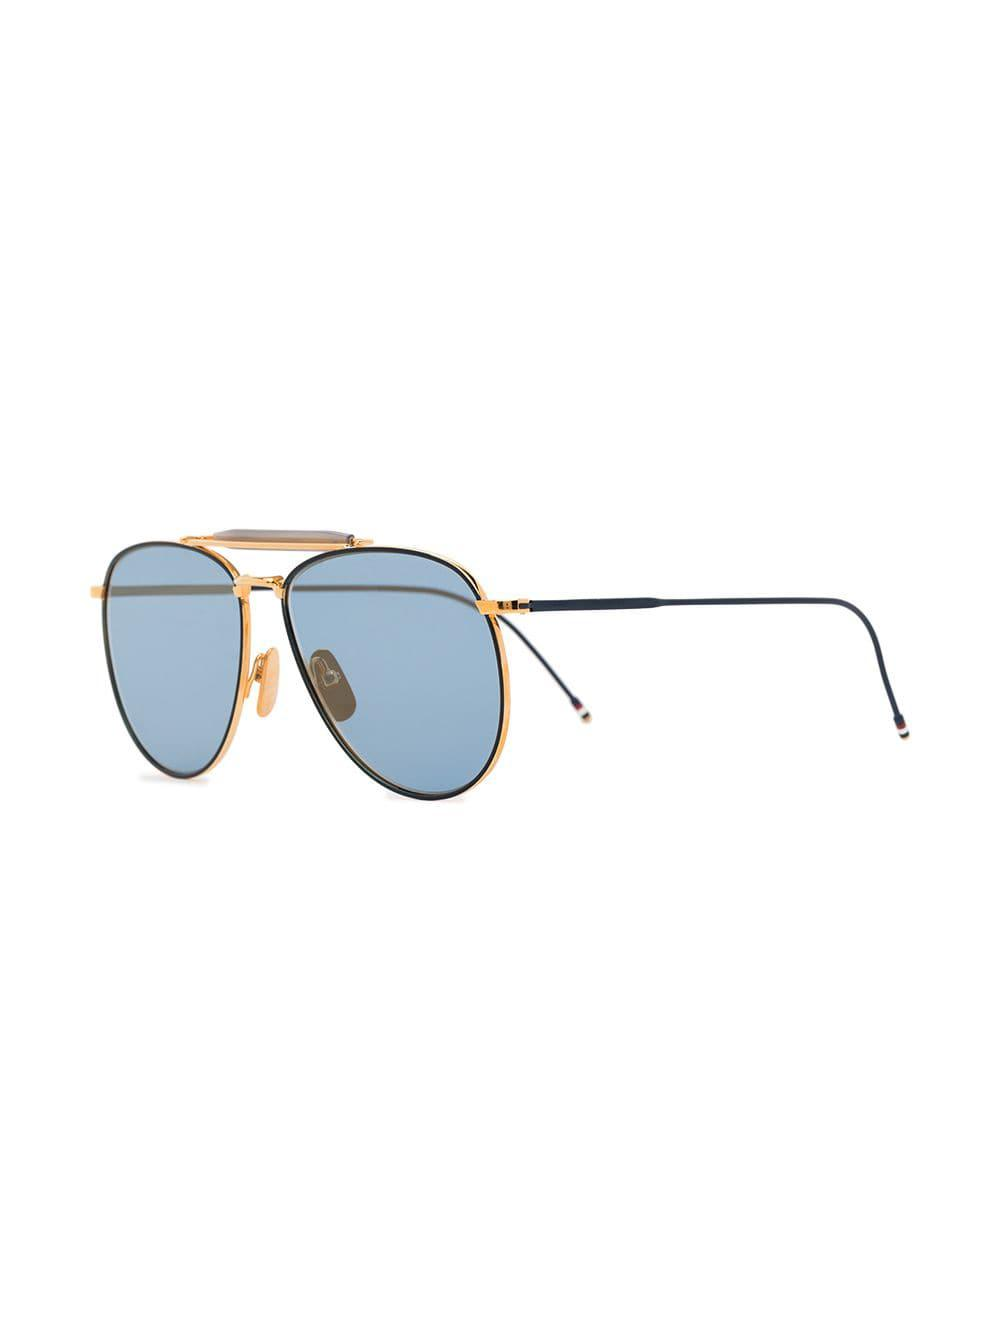 c7d623faae ... Gold Metallic 907 Aviator Sunglasses for Men - Lyst. View fullscreen